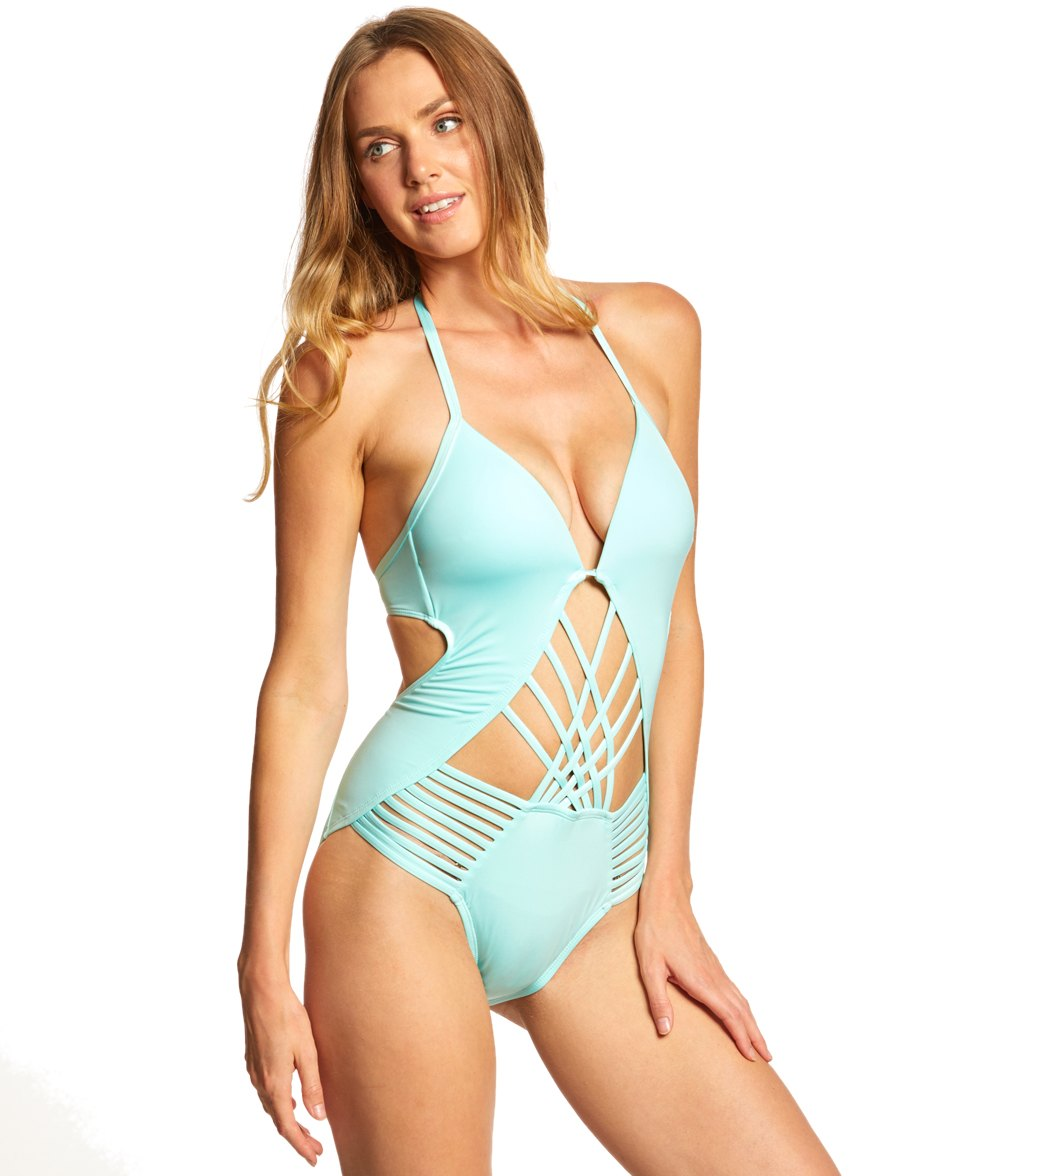 5af1013bce75a Kenneth Cole Swimwear Sexy Solids Push Up One Piece Swimsuit at  SwimOutlet.com - Free Shipping